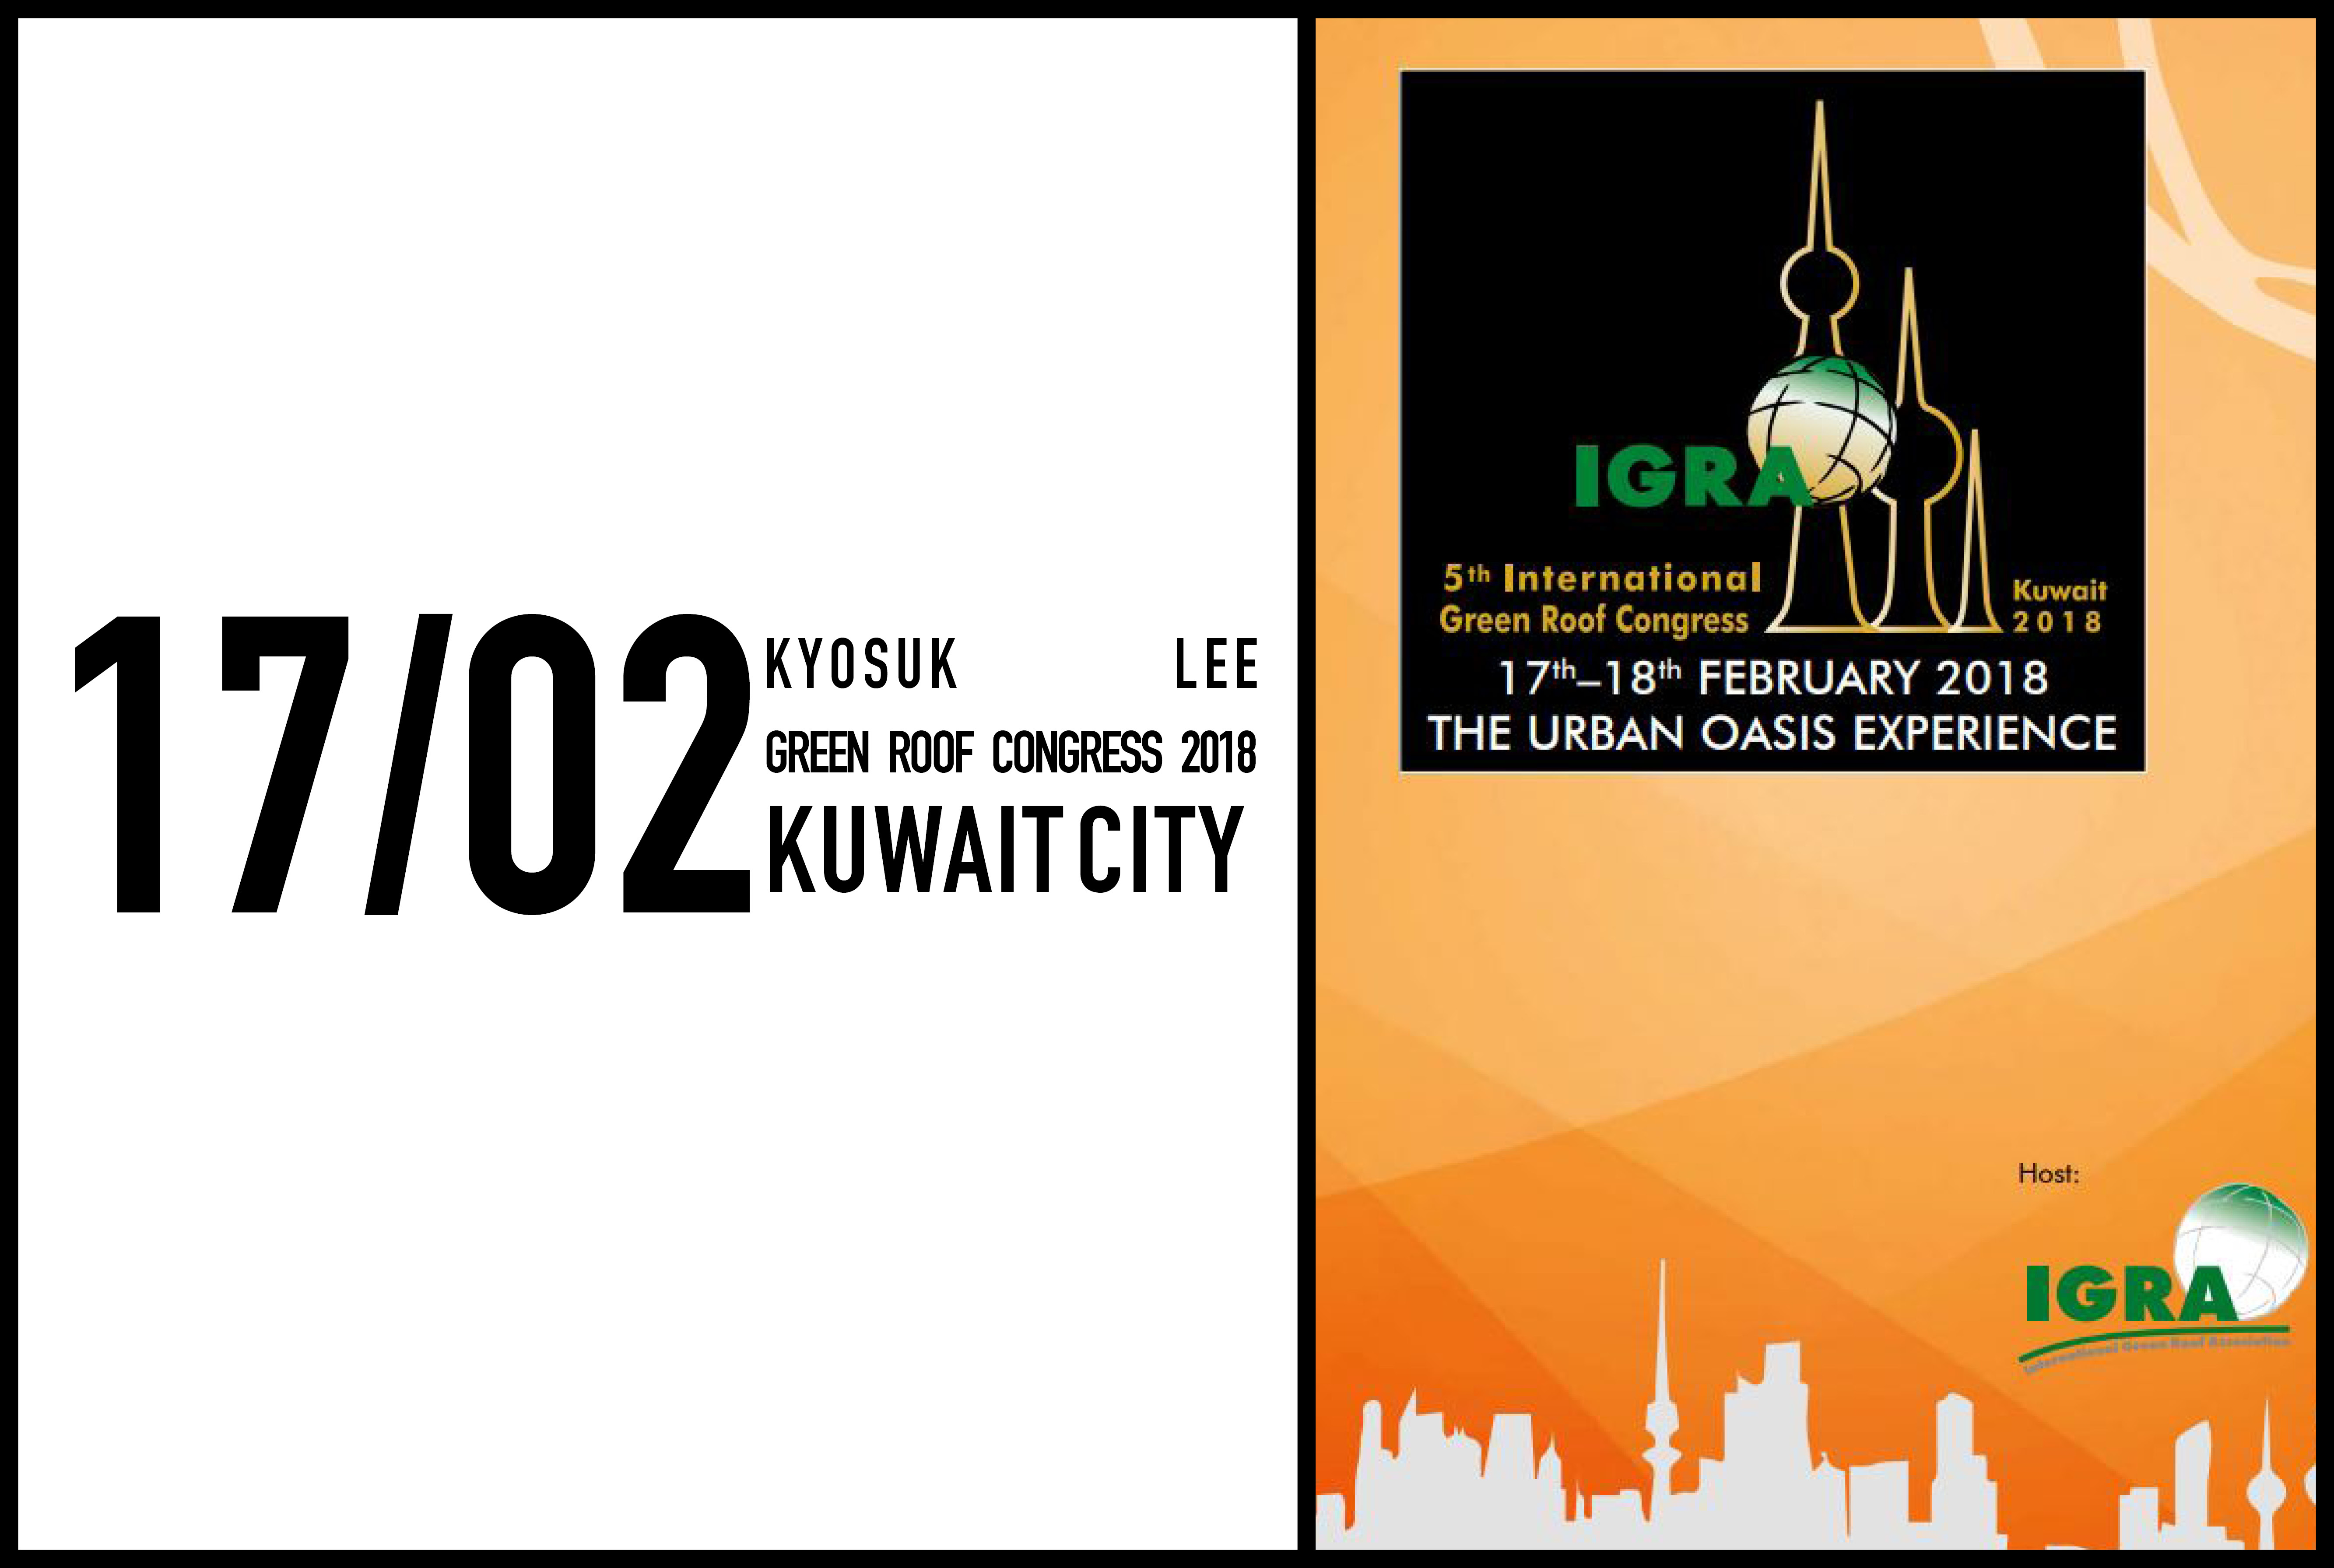 Kyosuk Lee to present on 17-18 February at the 5th International Green Roof Congress In Kuwait City, Kuwait